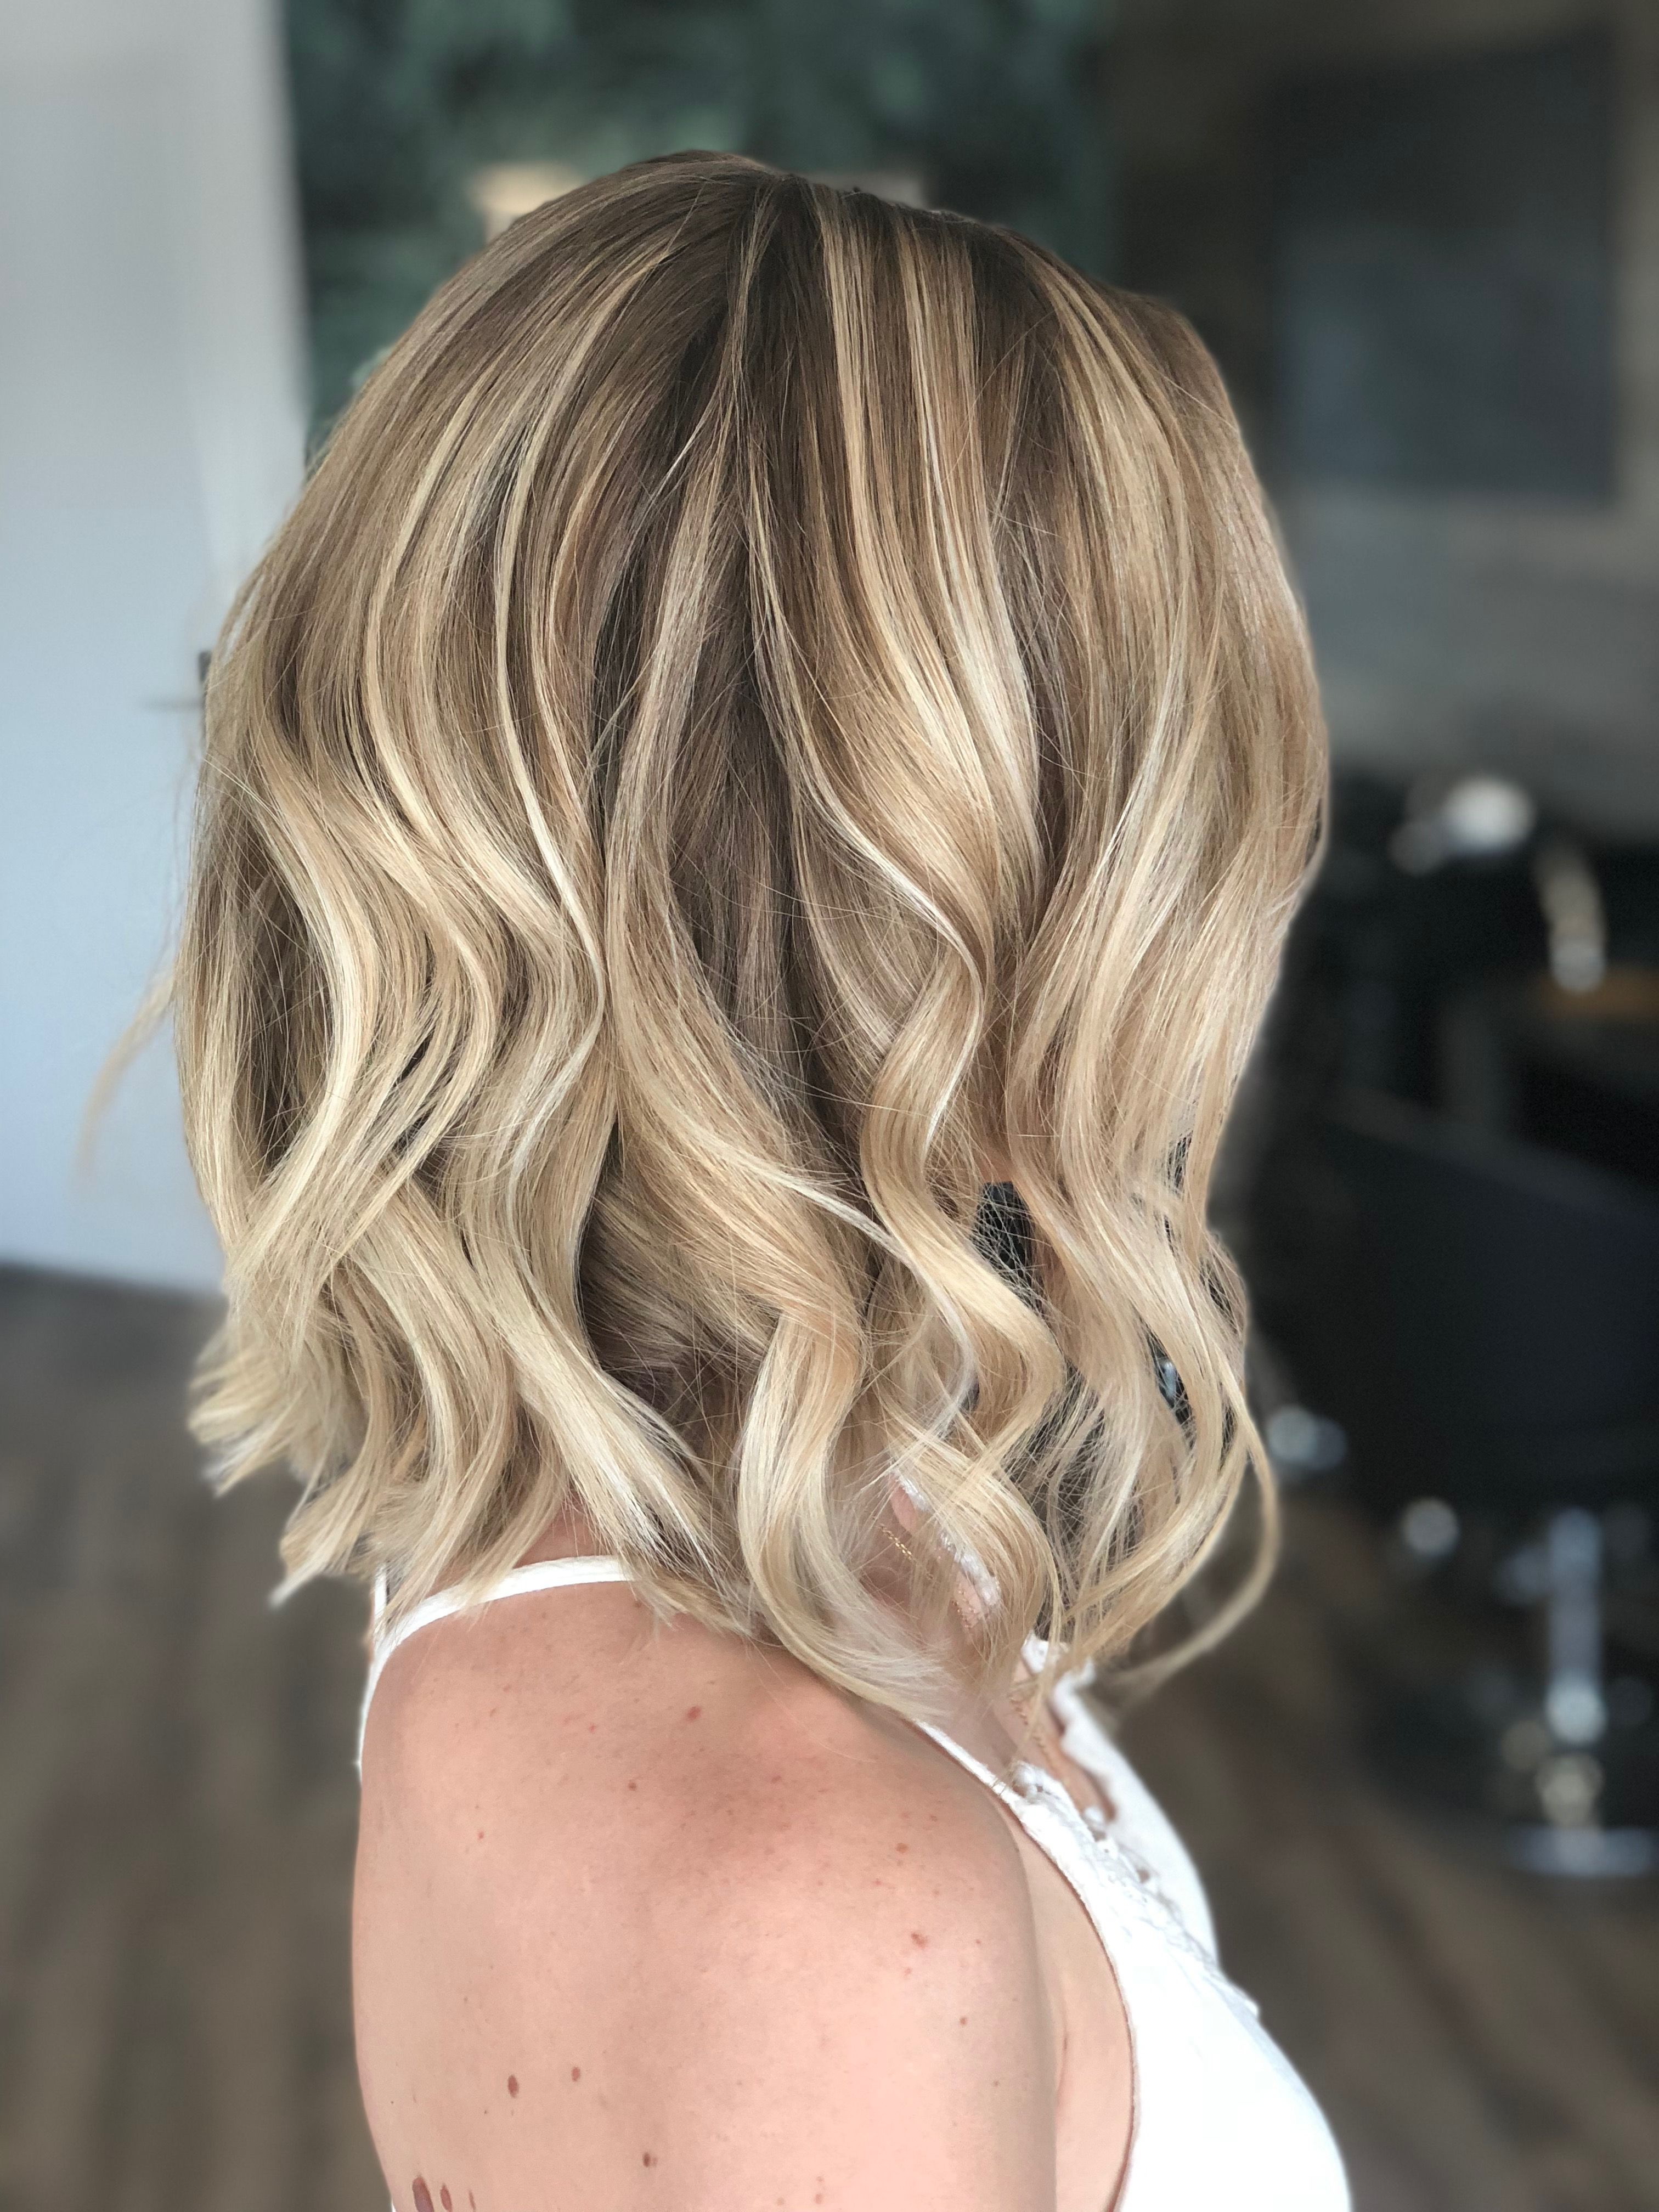 Carré plongeant mi-long blond polaire & wavy (Instagram @celine__be) | Coupe carré plongeant ...